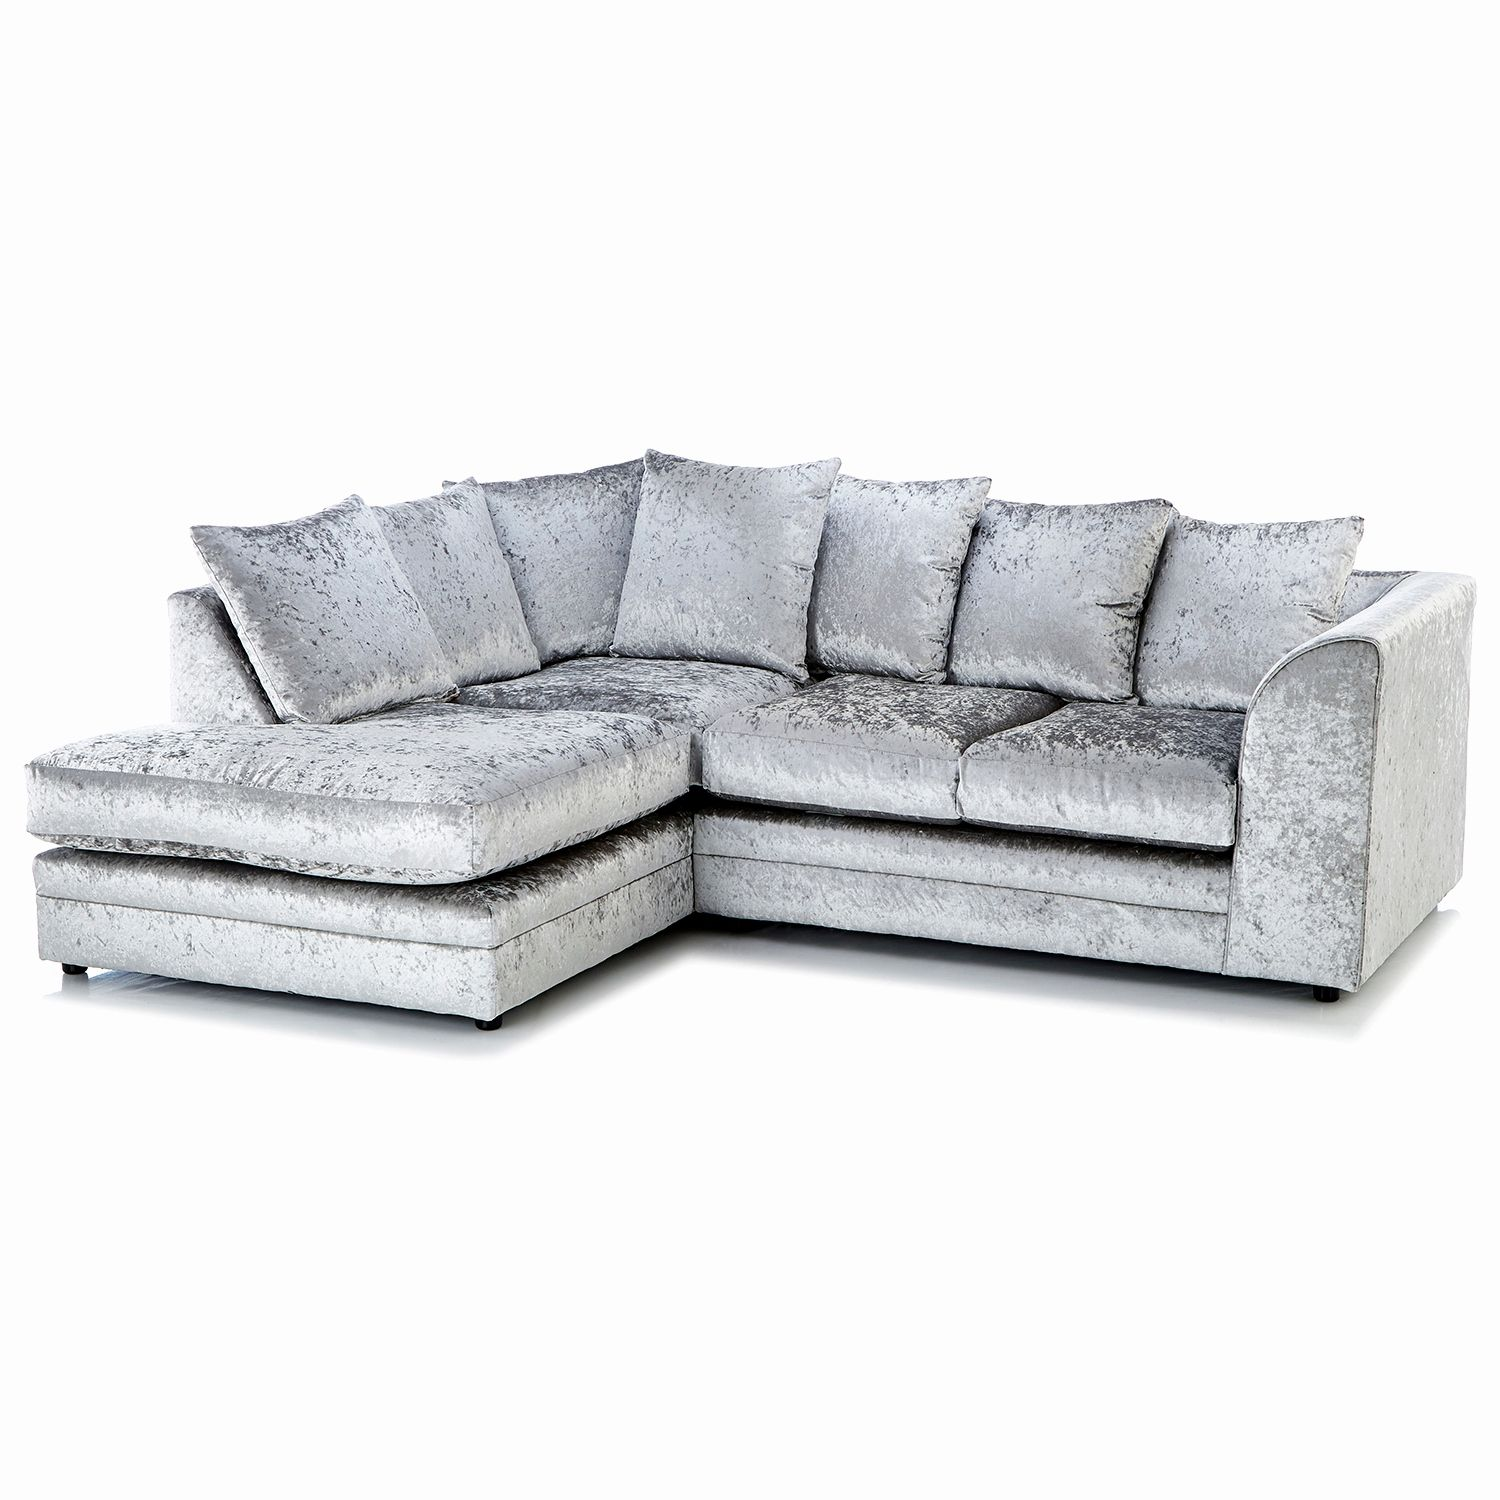 Lovely Velvet Settee Sofas Shot Velvet Settee Sofas Awesome Furniture Best  Quality Grey Velvet Sofa For